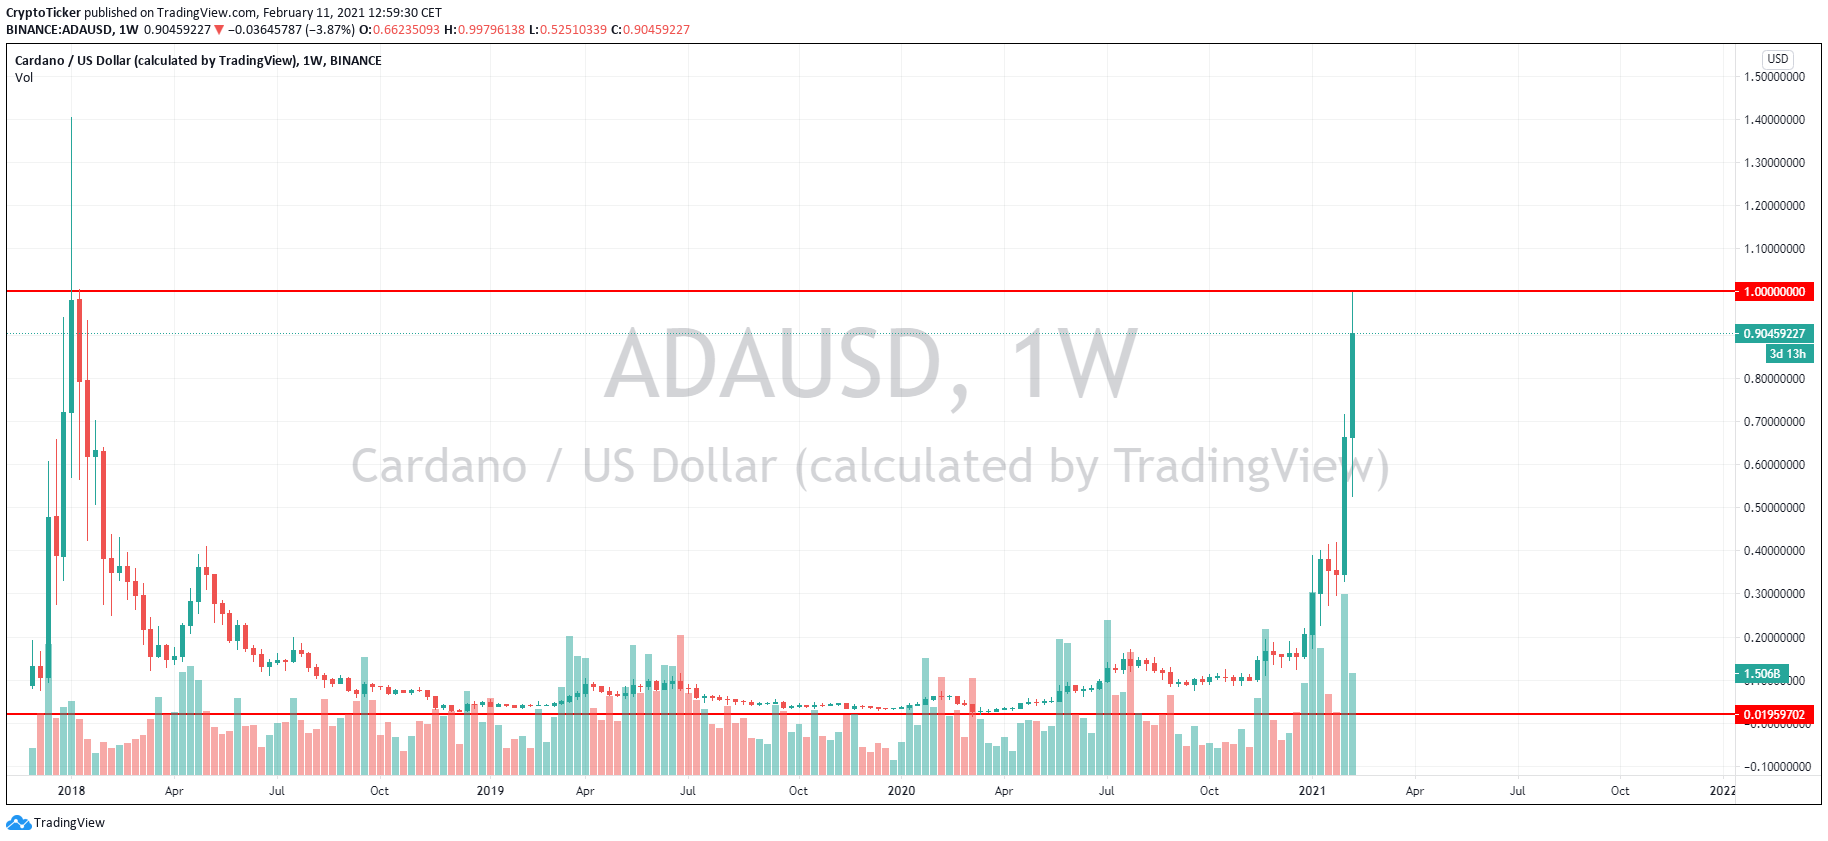 ADA/USD 1-week chart showing ADA's prices reaching ATH again